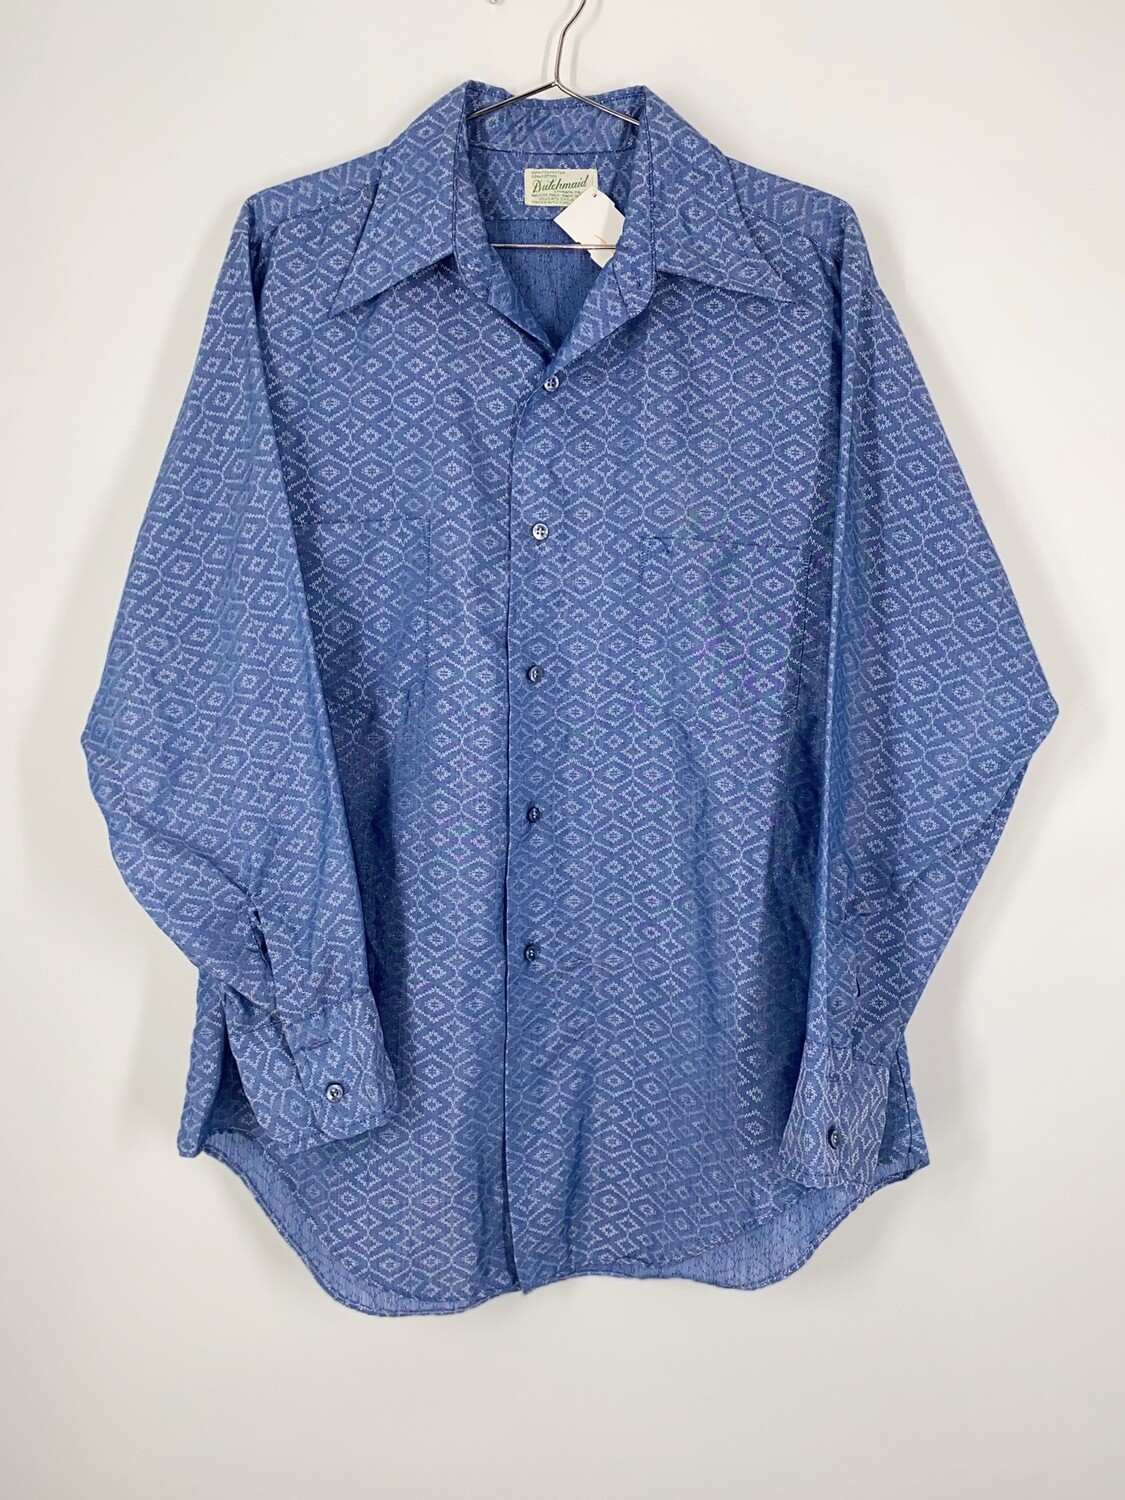 Blue Patterned Button Up Size M